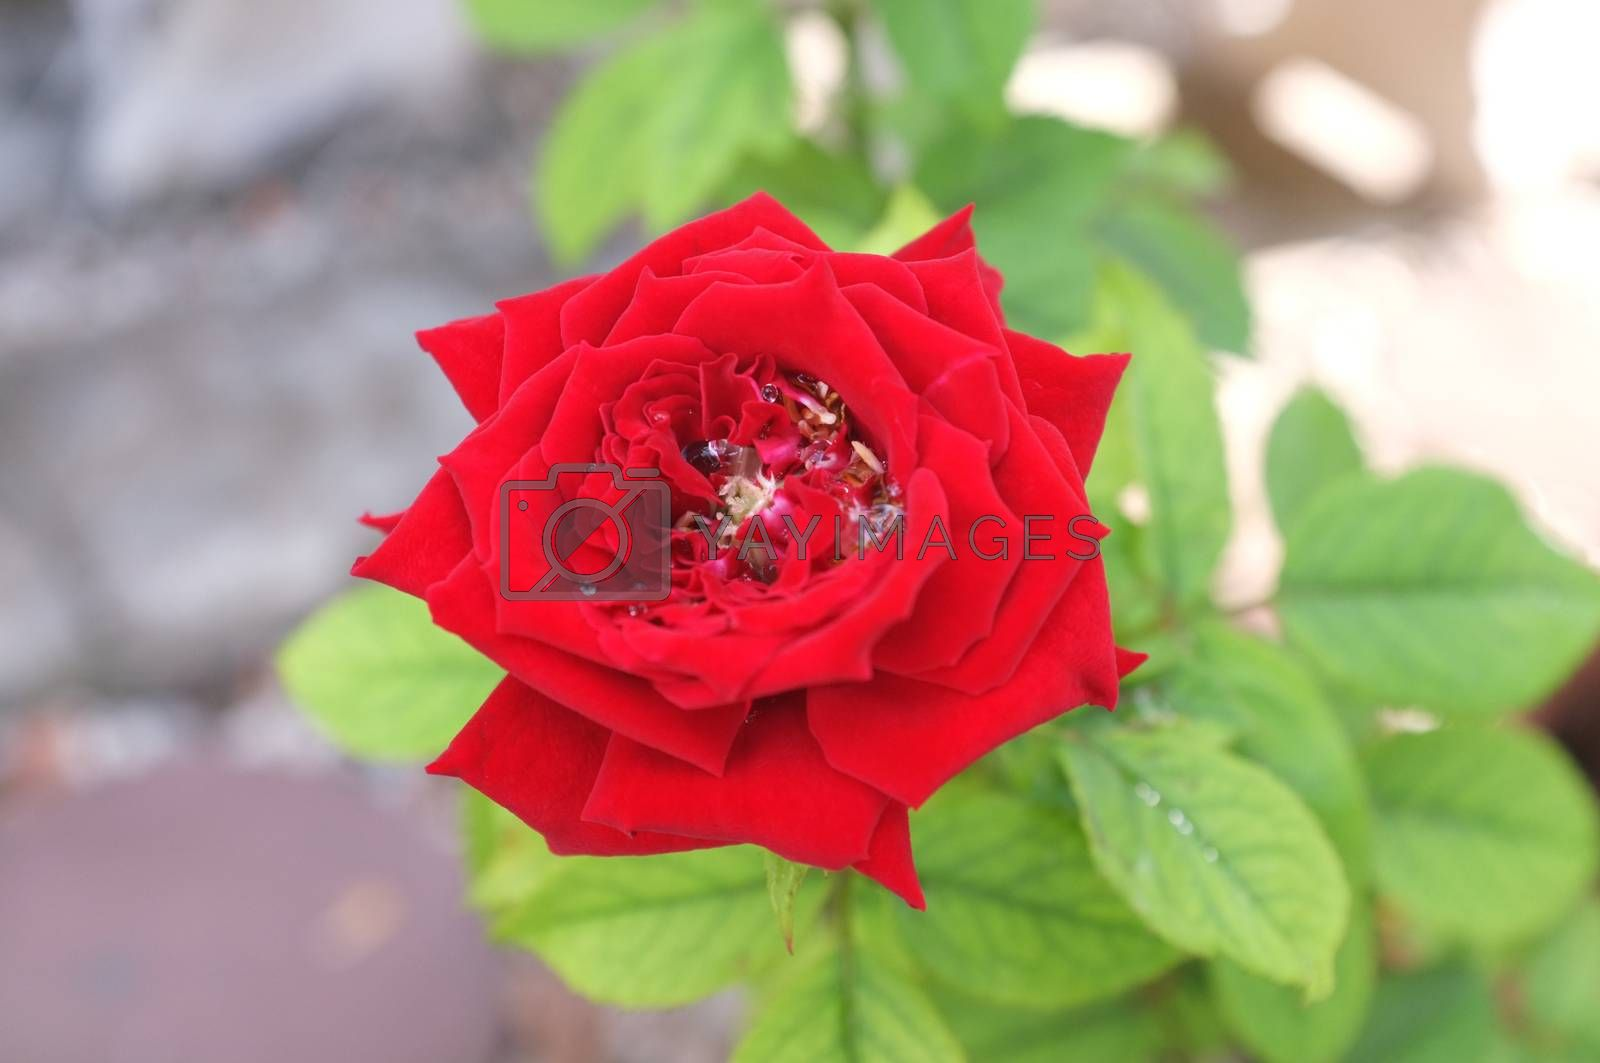 Royalty free image of Red rose with green leaves by Hepjam